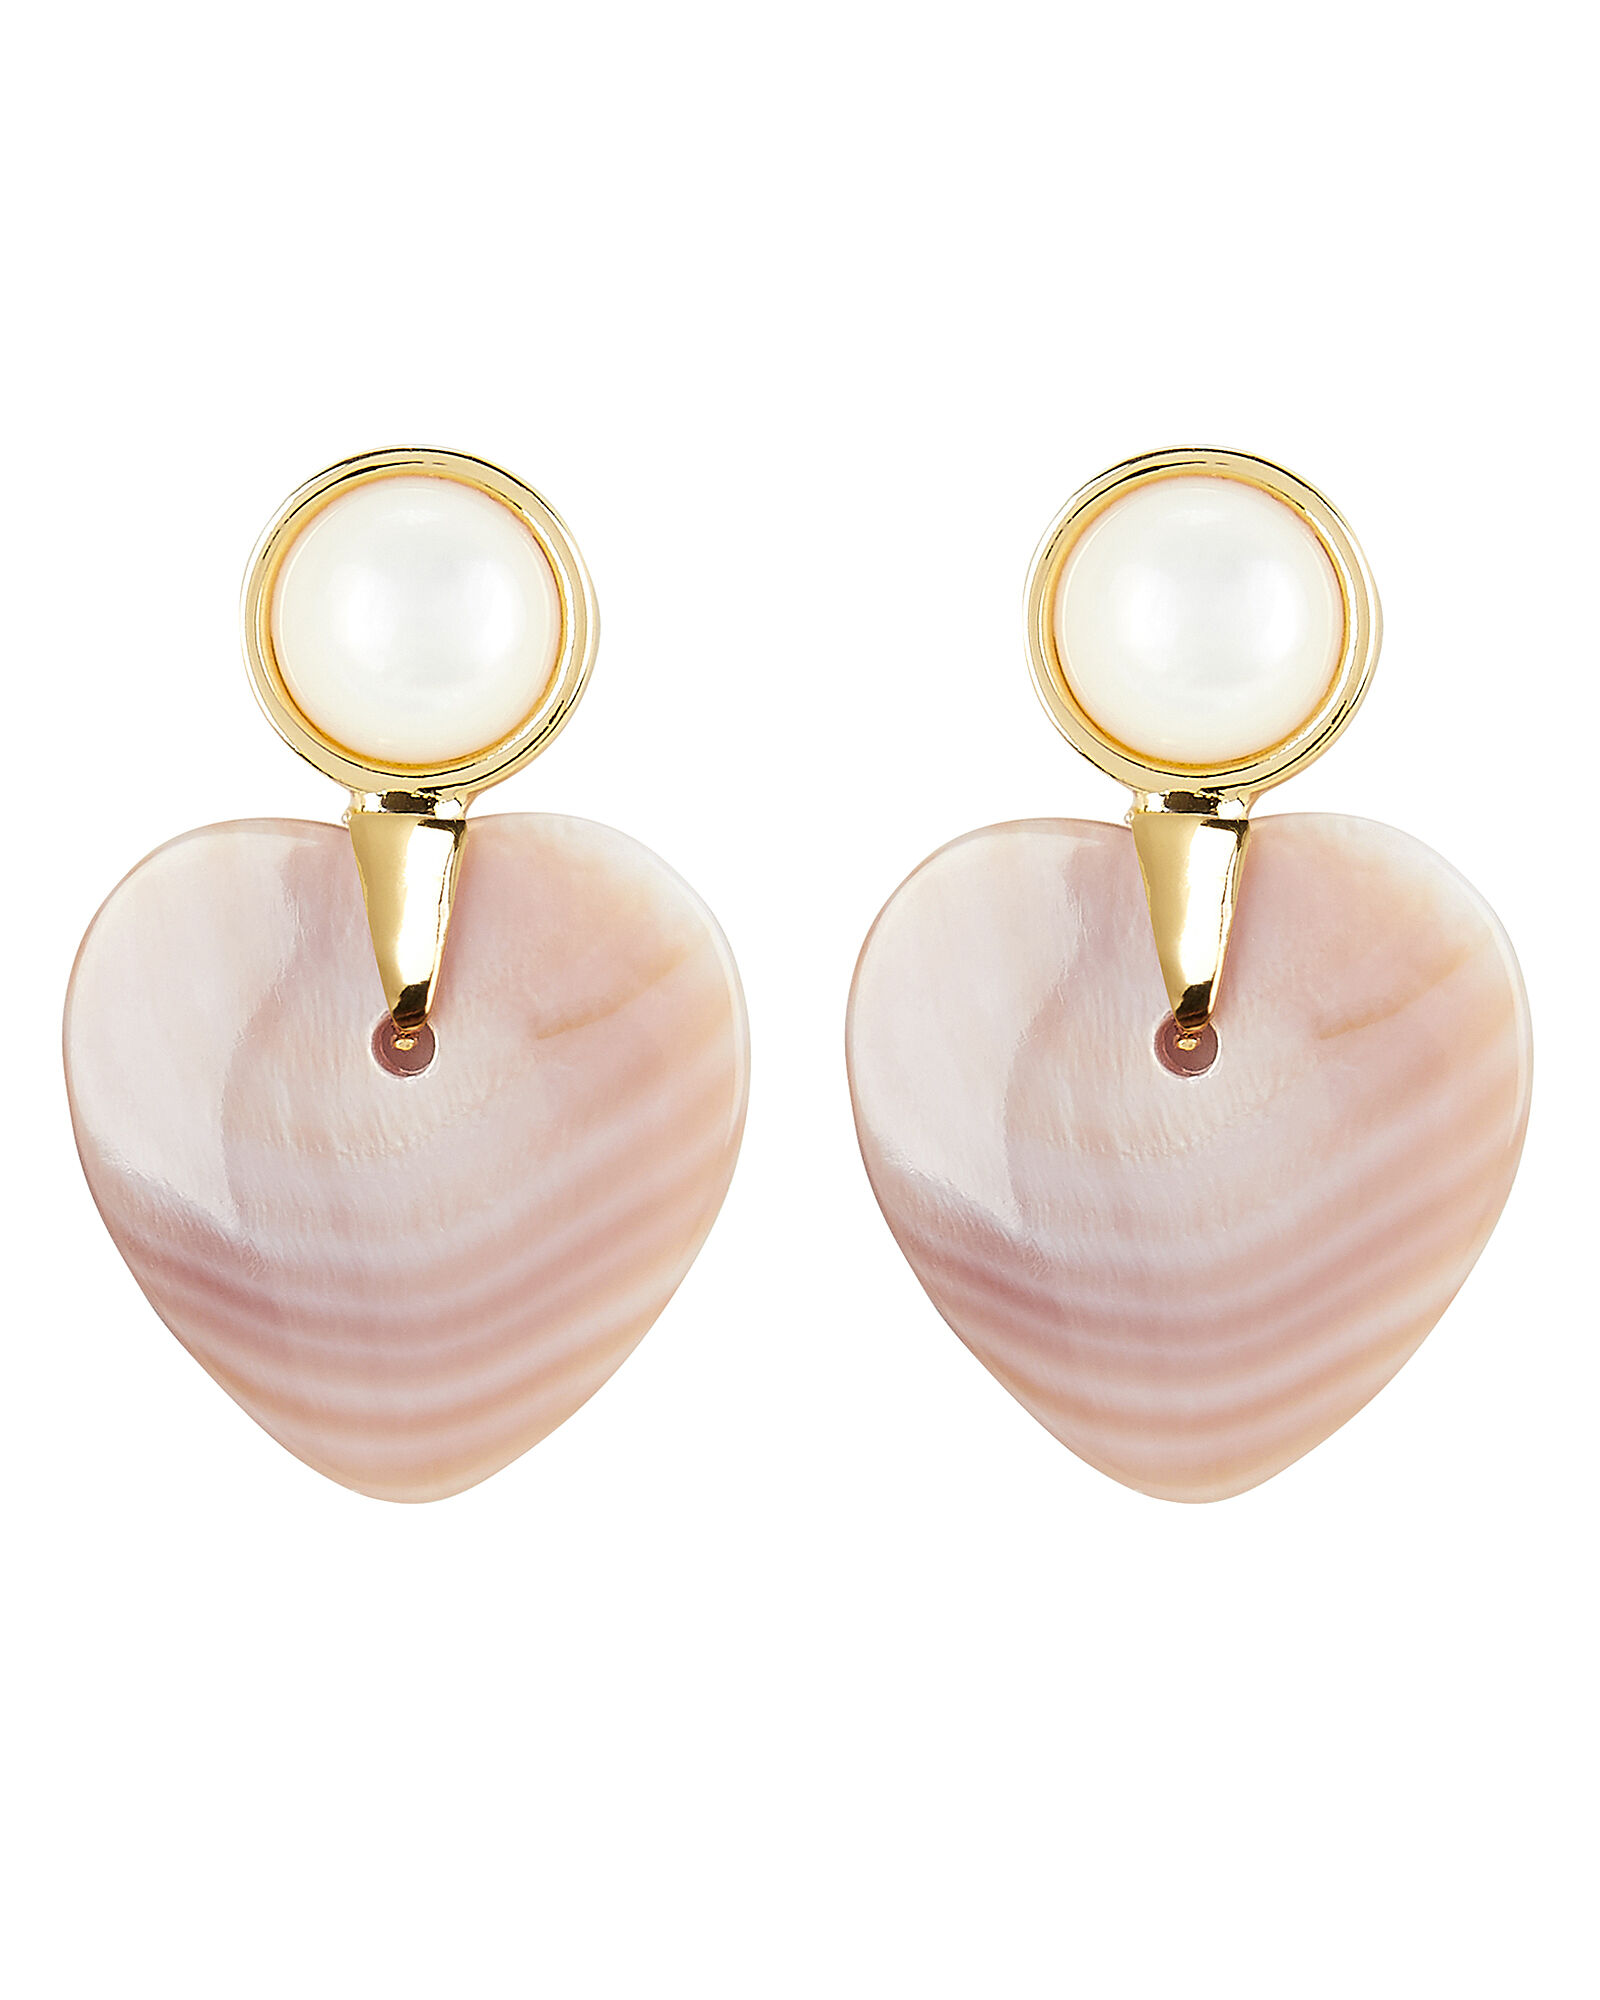 Heart and Soul Earrings, GOLD/PINK, hi-res